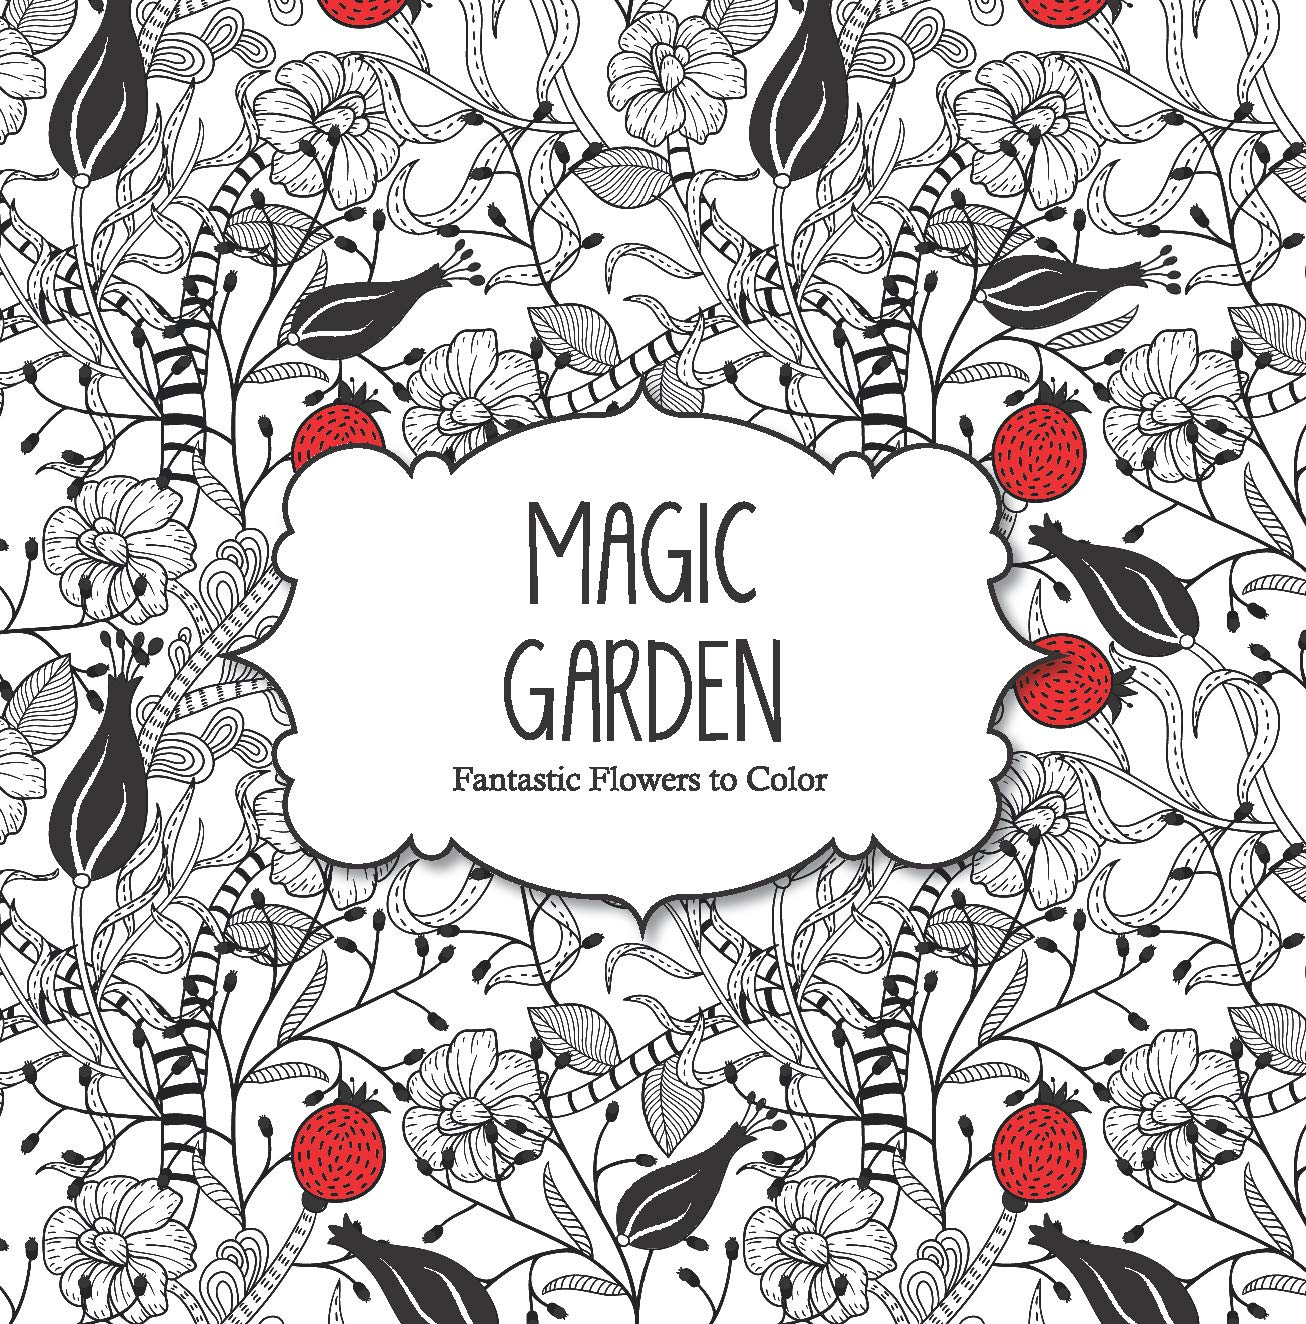 Magic Garden Fantastic Flowers Coloring Book For Adults Color Magic Amazon Co Uk Arsedition 0027011406393 Books